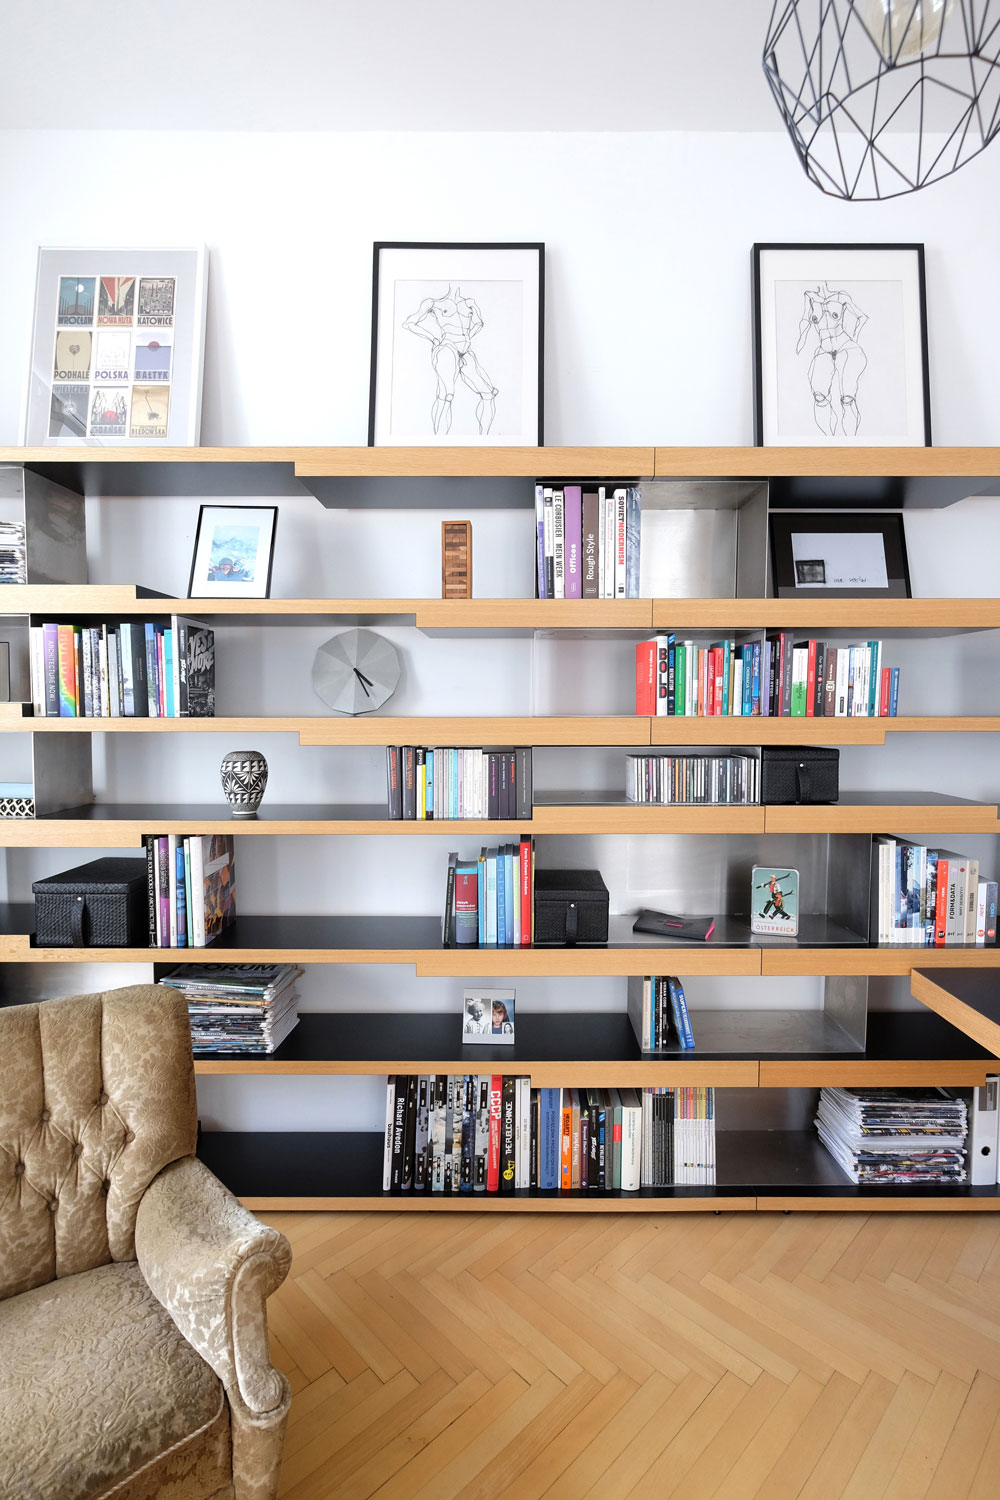 SPLITLEVEL_bookshelfsystem_04-LR.jpg